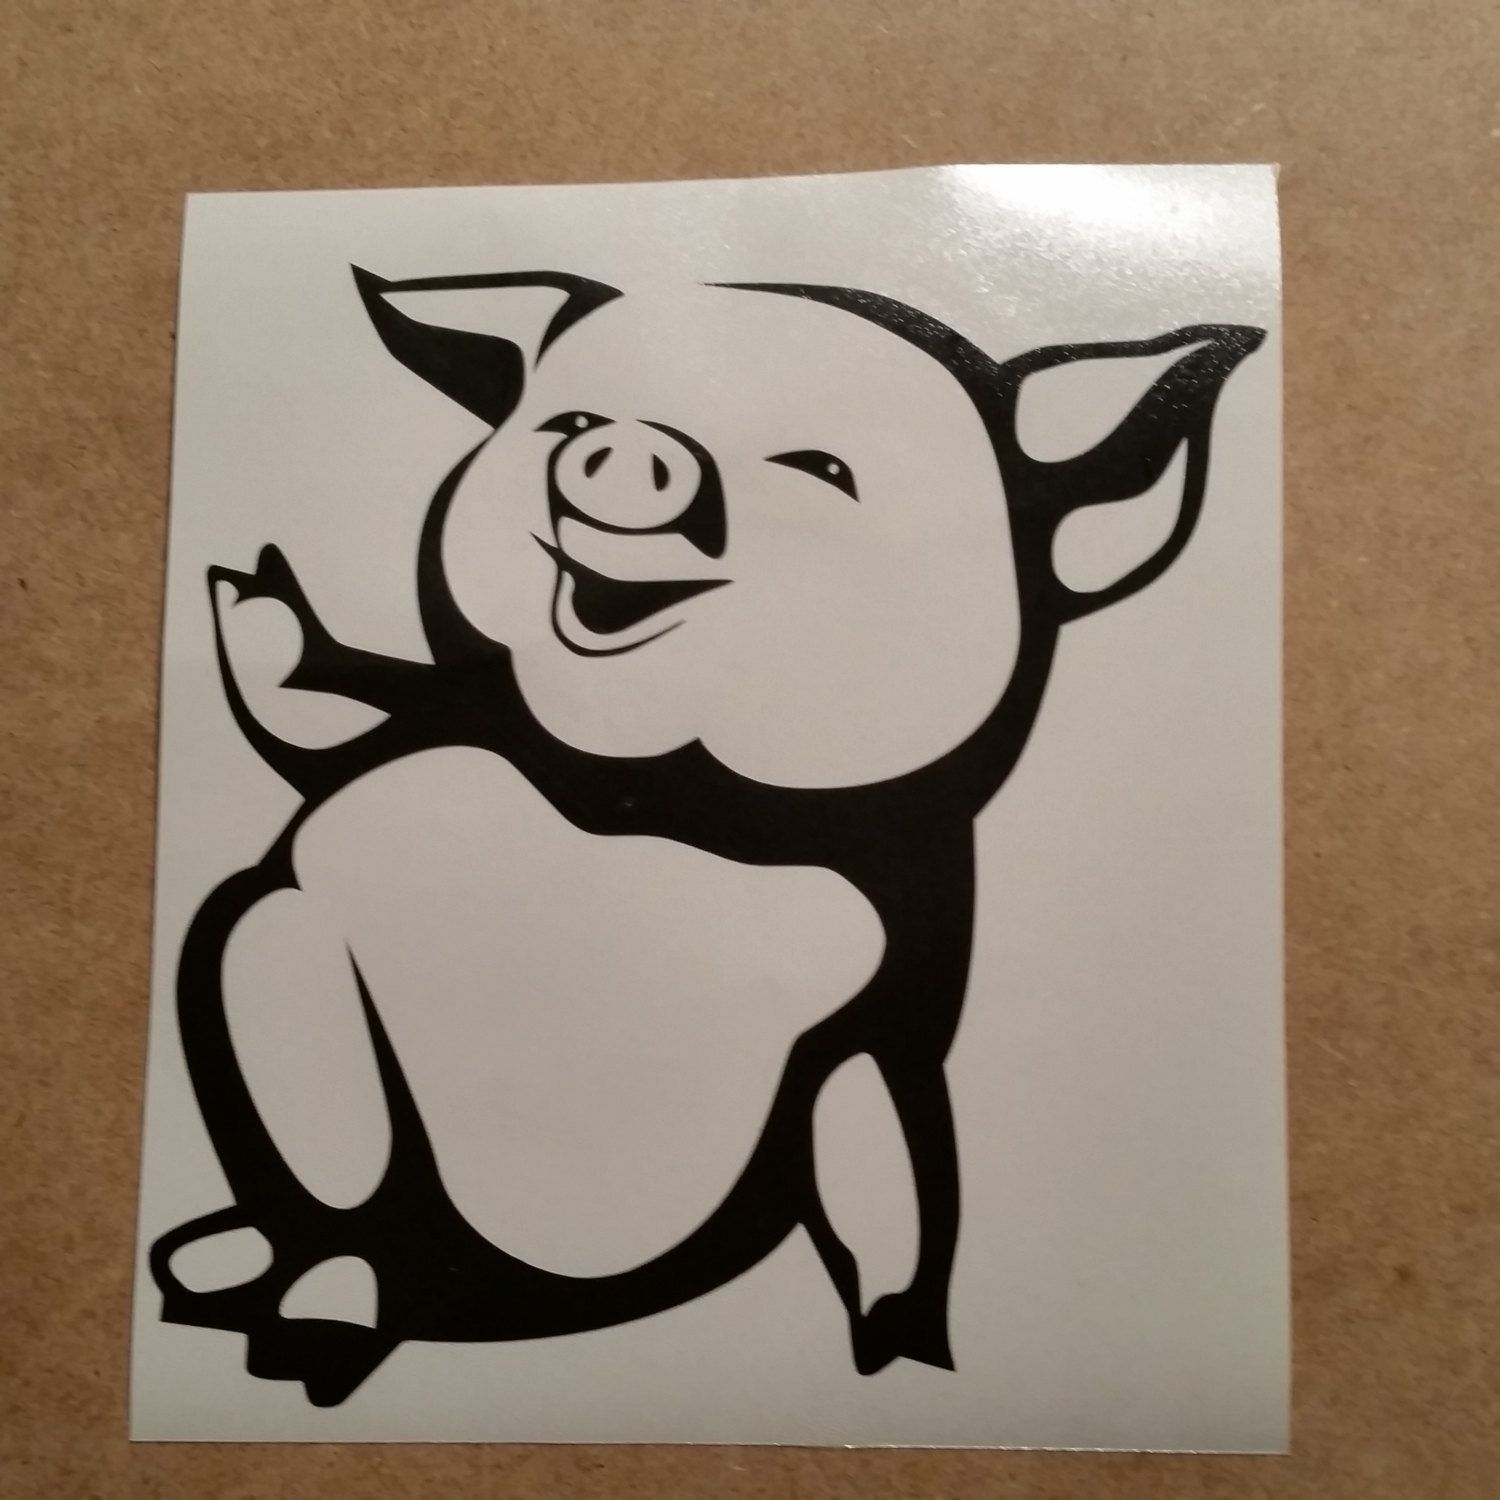 Cute Pig Vinyl Decal Pig Wall Art Pig Car Decal Pig Wall Vinyl Piglet Decal Pig Decal Pig Wall Sticker Piglet Cute Art Black White Cartoon Cute Pigs Cartoon Body